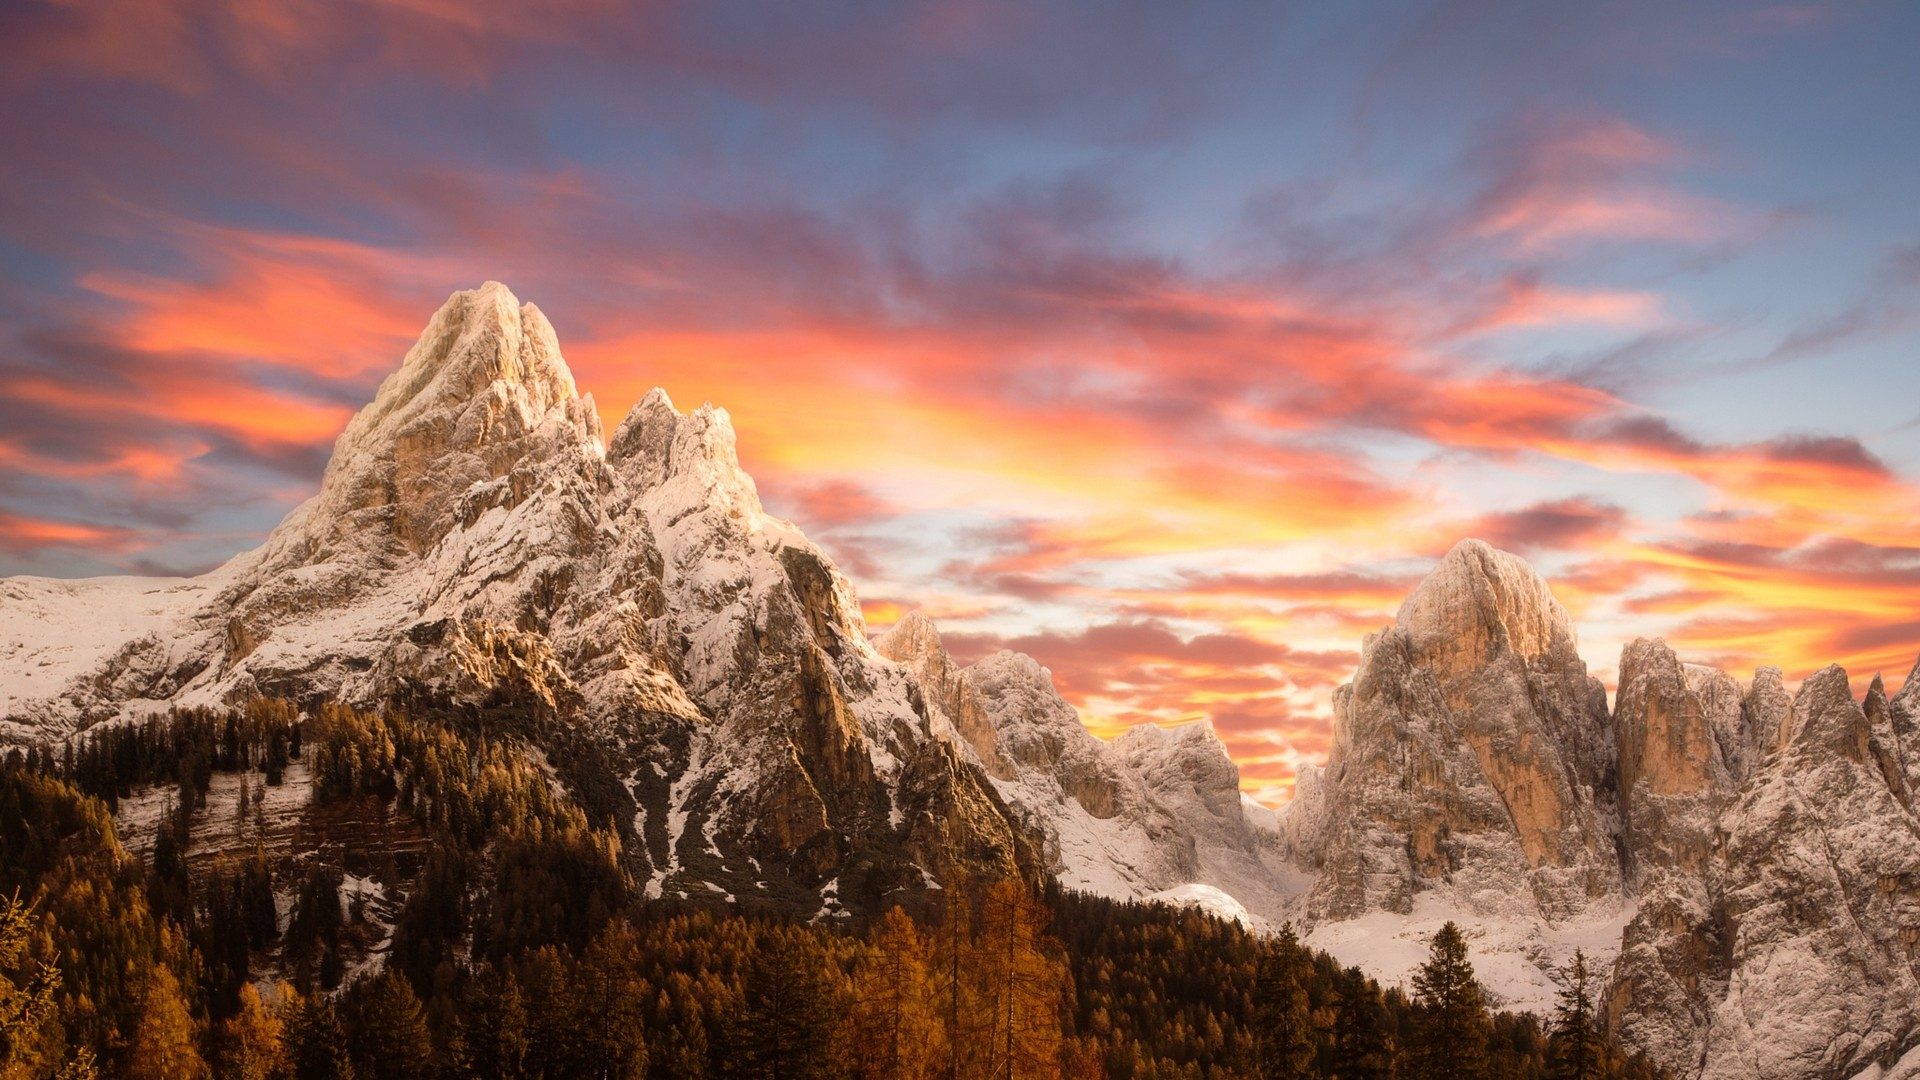 Dolomites Mountains Hd Nature 4k Wallpapers Images